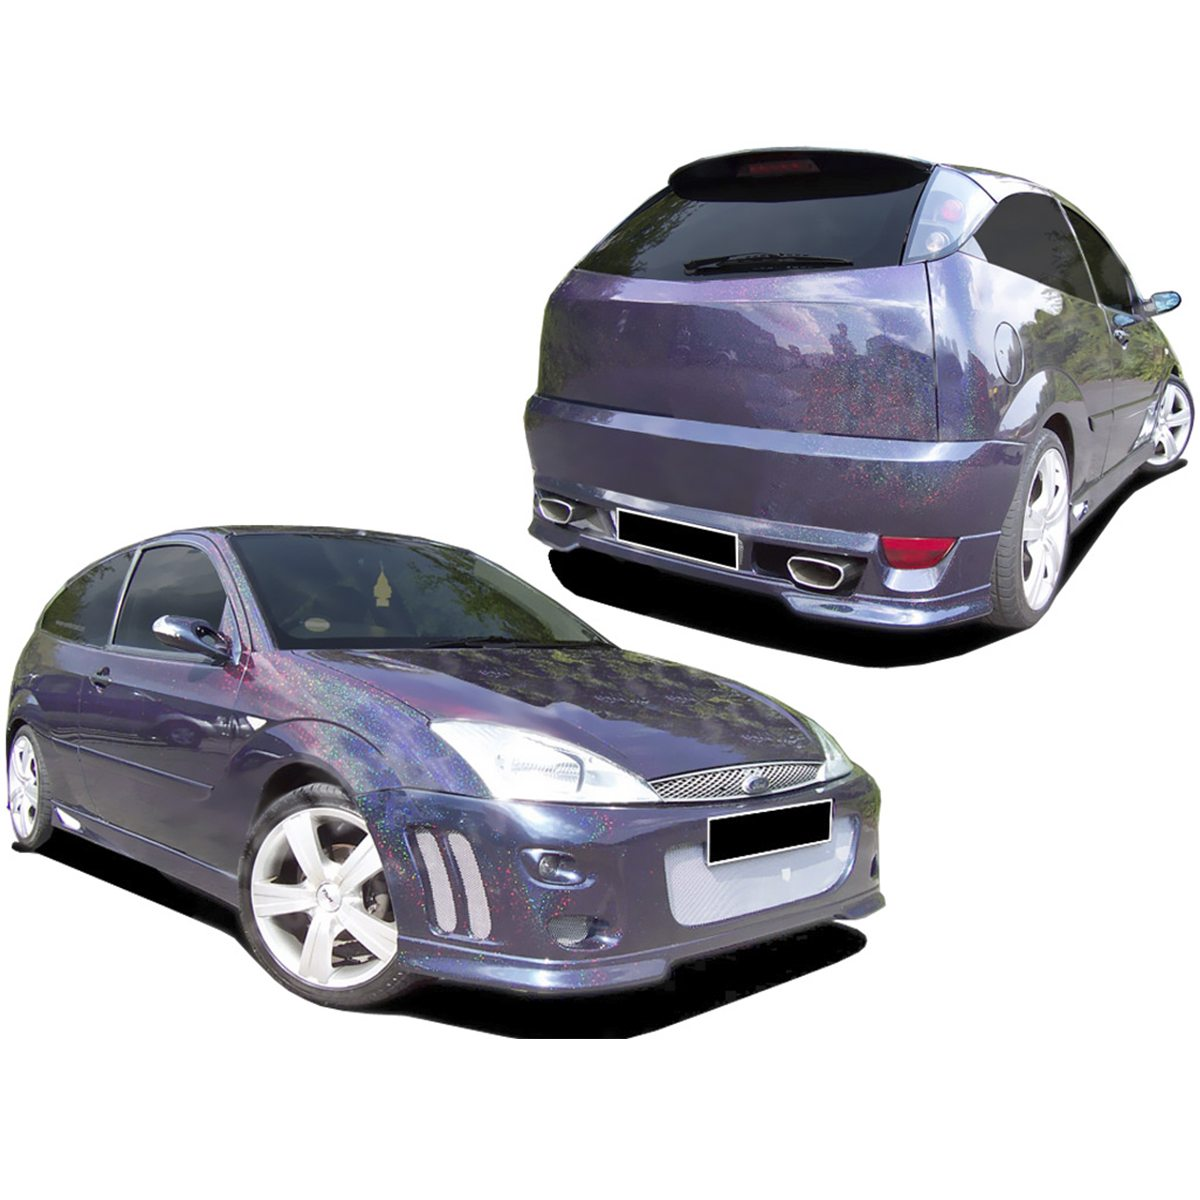 Ford-Focus-Hunter-KIT-QTU106